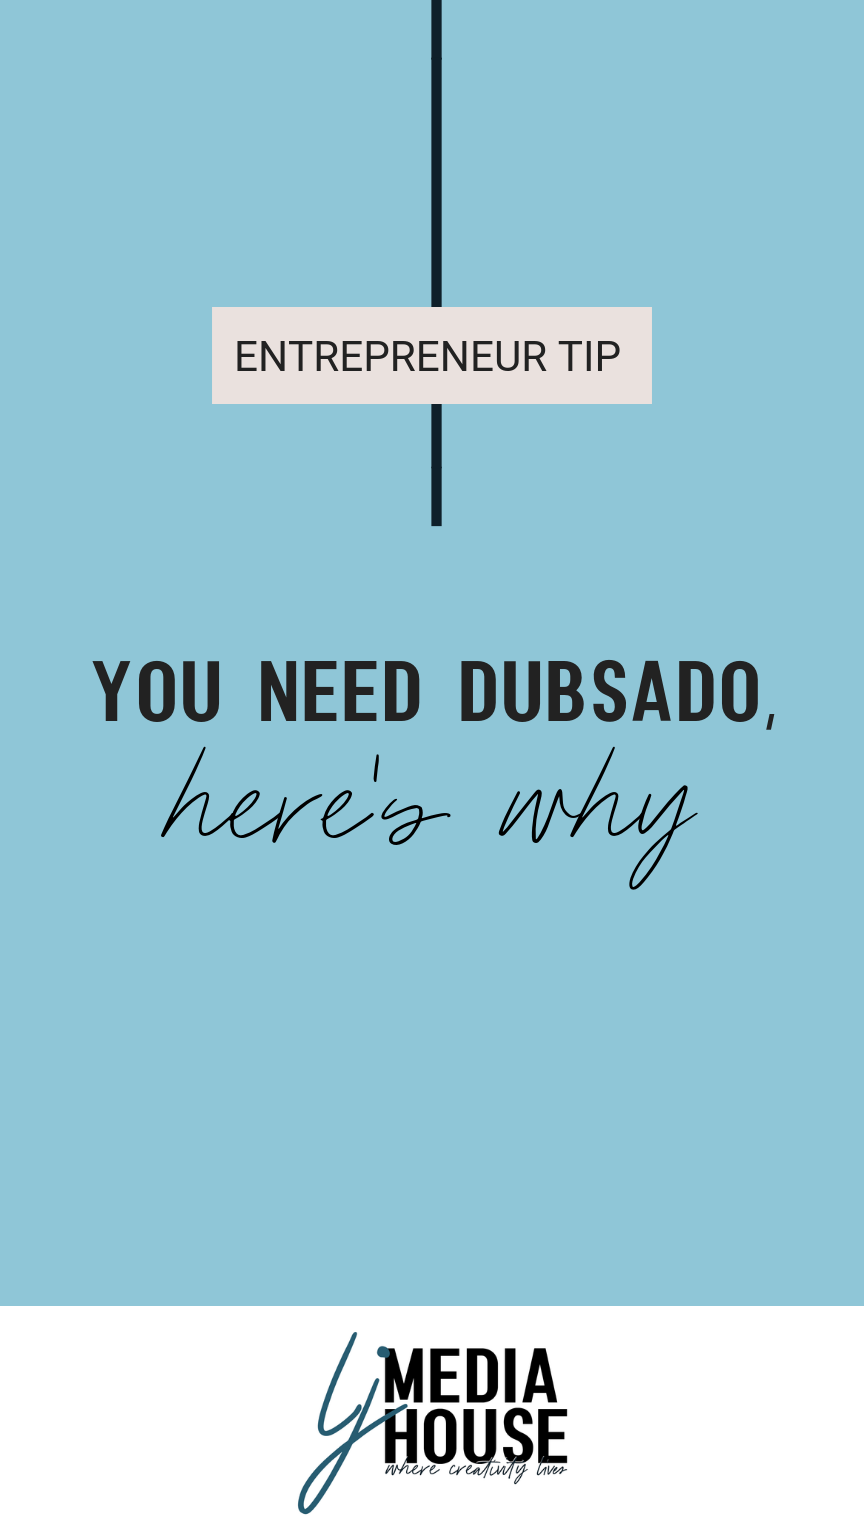 You need dubsado here's why